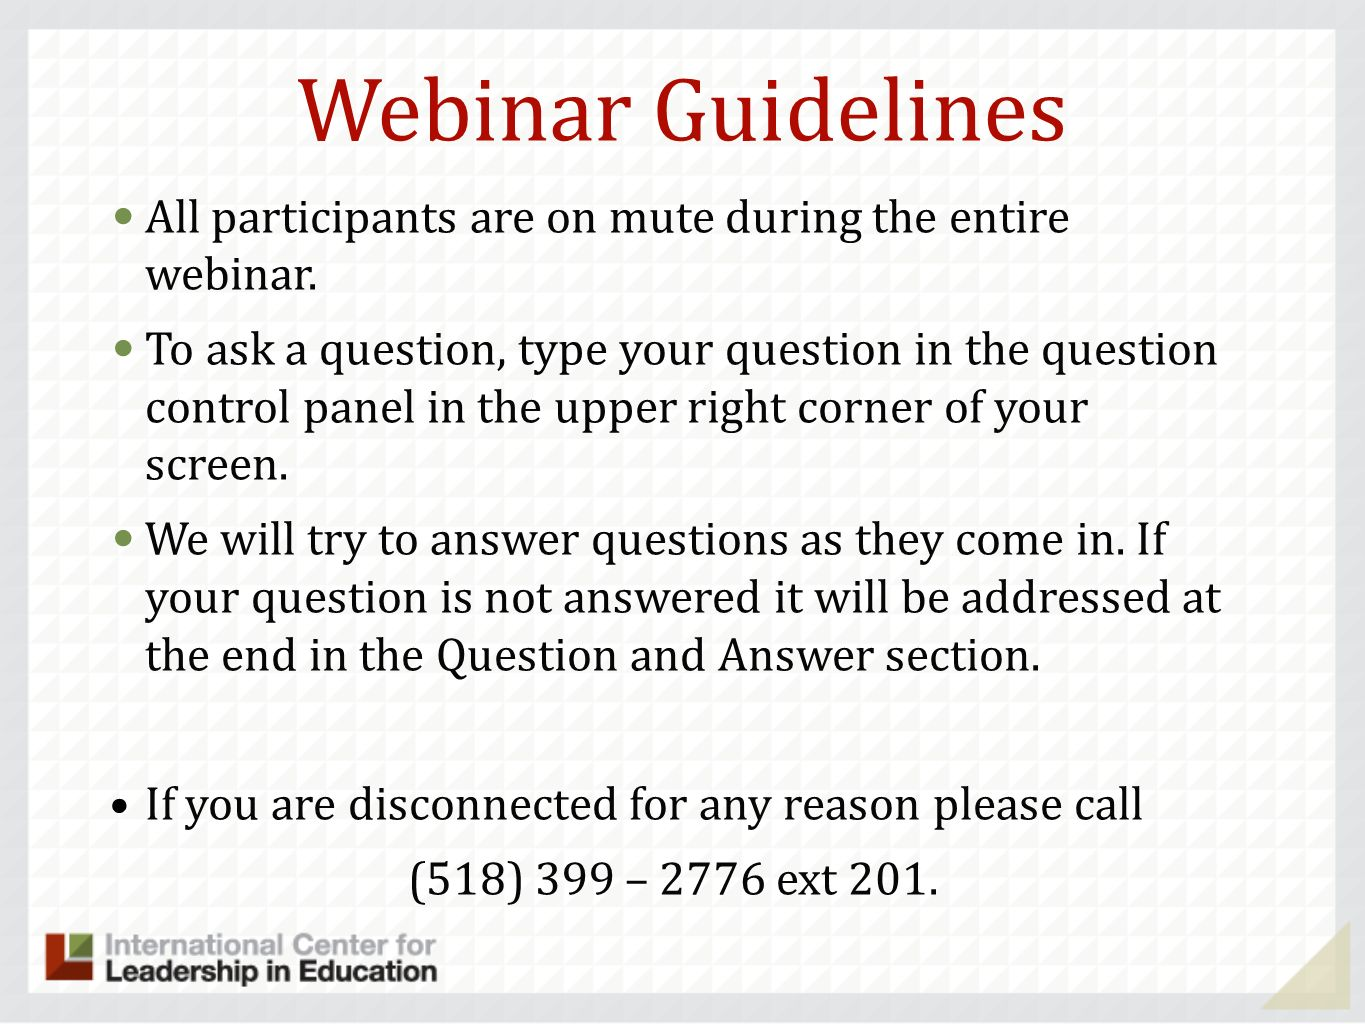 Webinar Guidelines All participants are on mute during the entire webinar. To ask a question, type your question in the question control panel in the